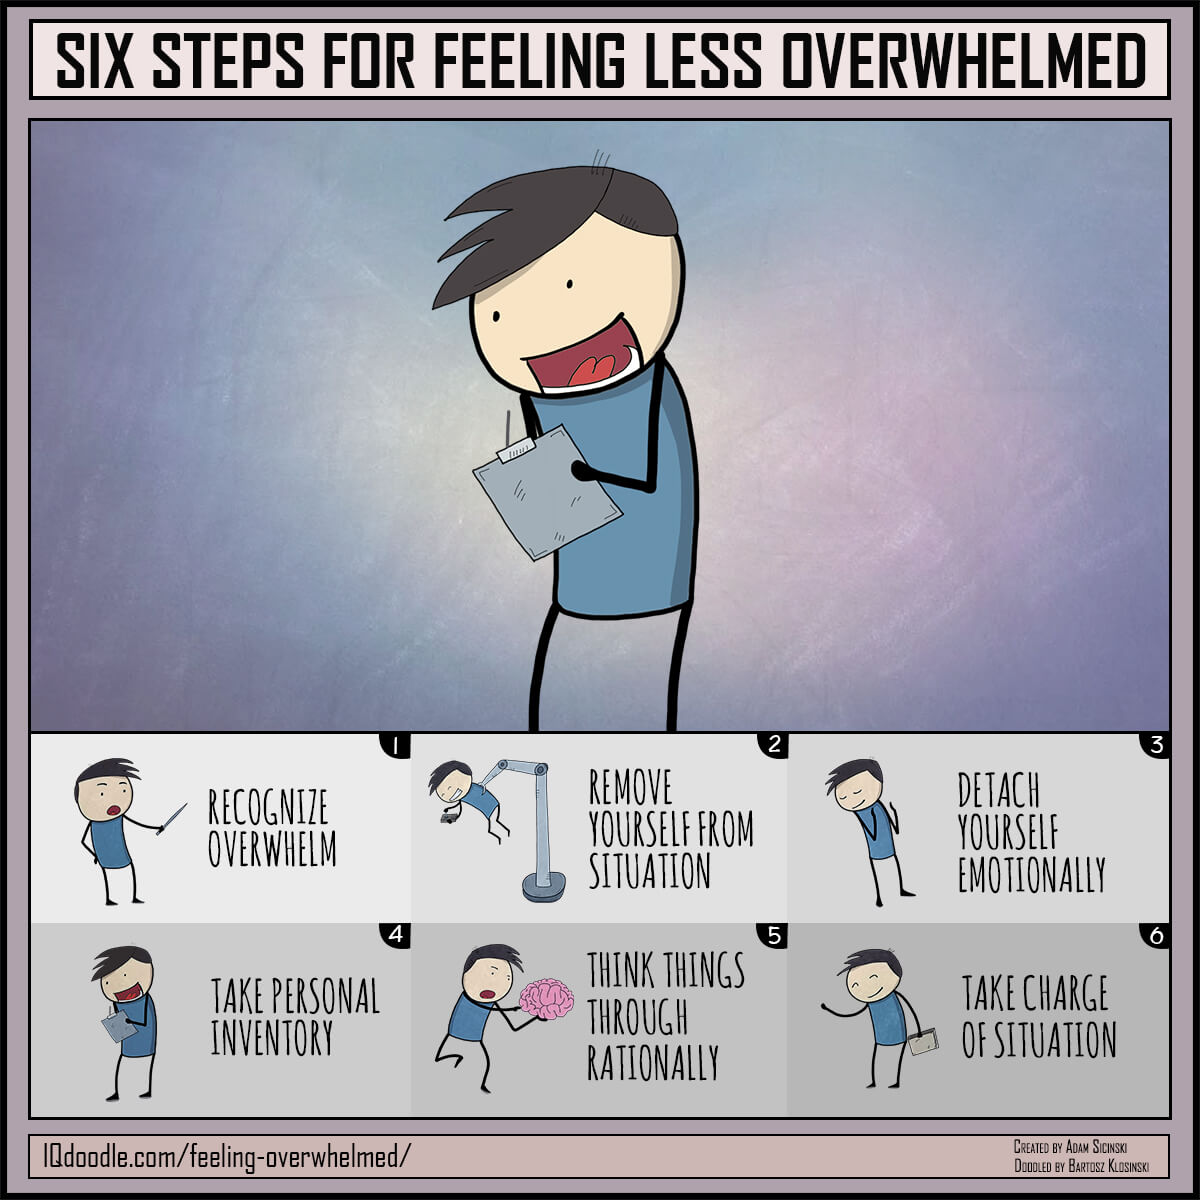 Six Steps for Feeling Less Overwhelmed